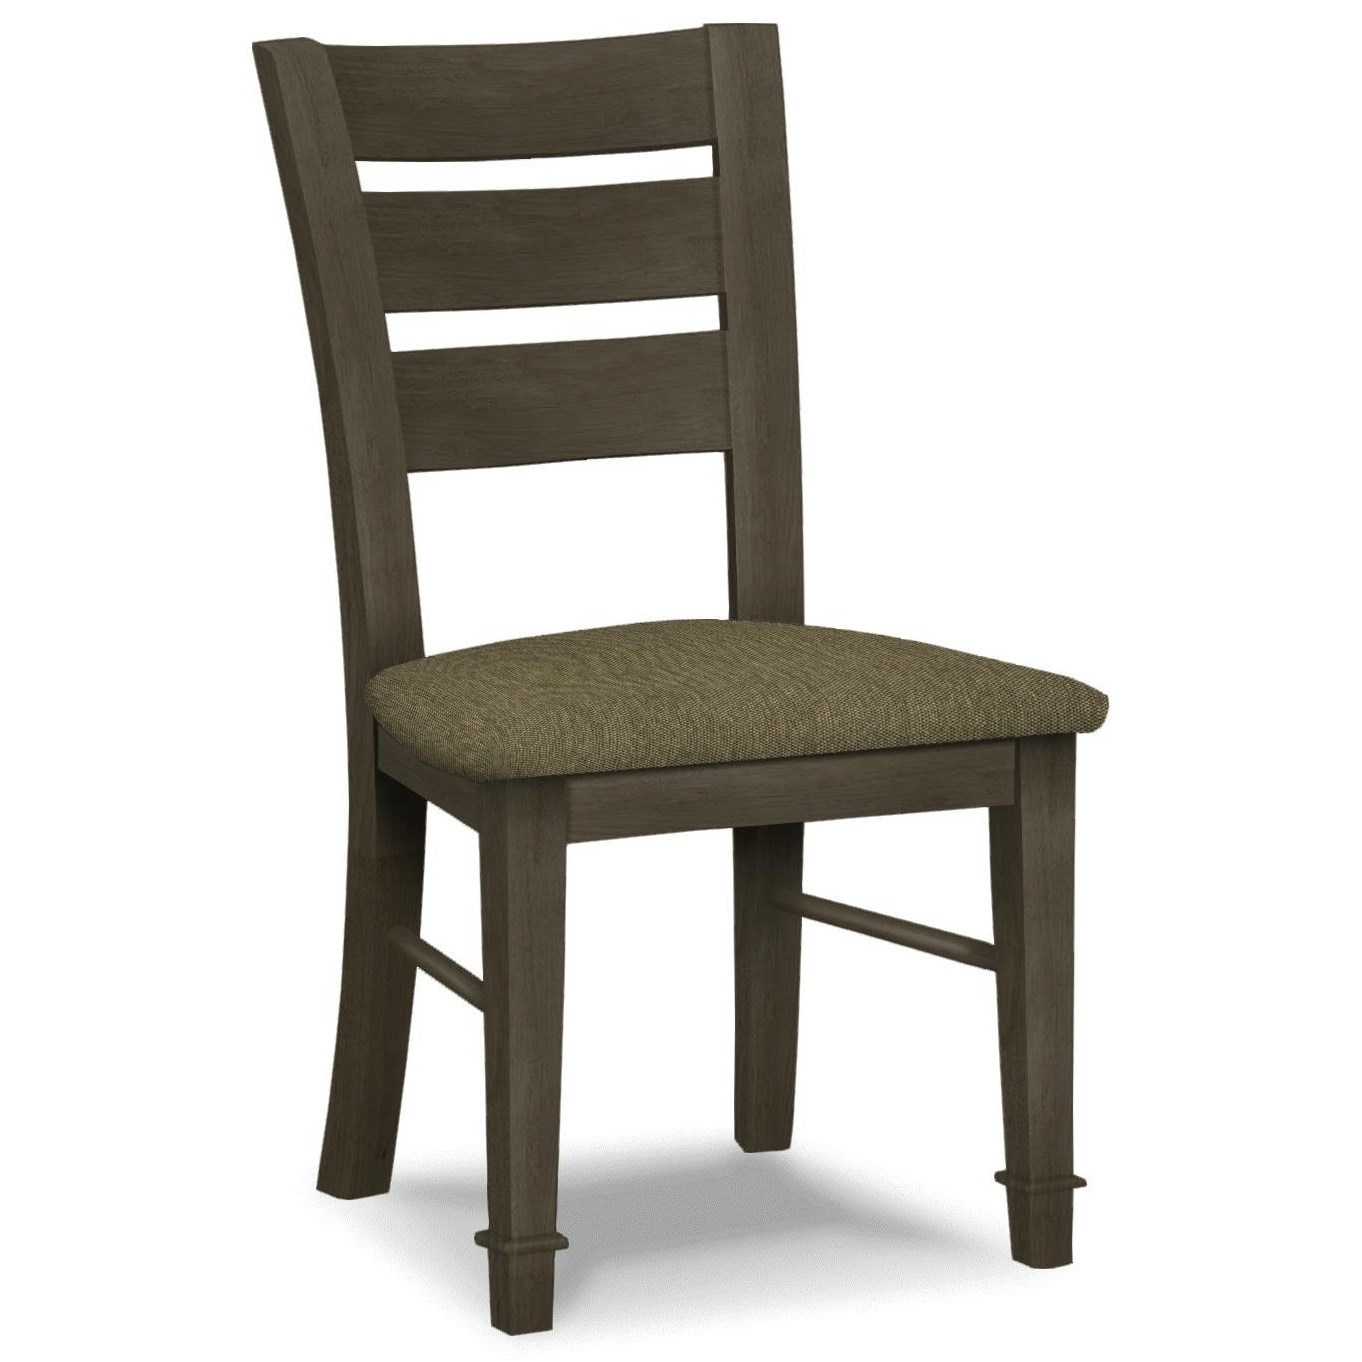 SELECT Dining Tuscany Side Chair by John Thomas at Baer's Furniture